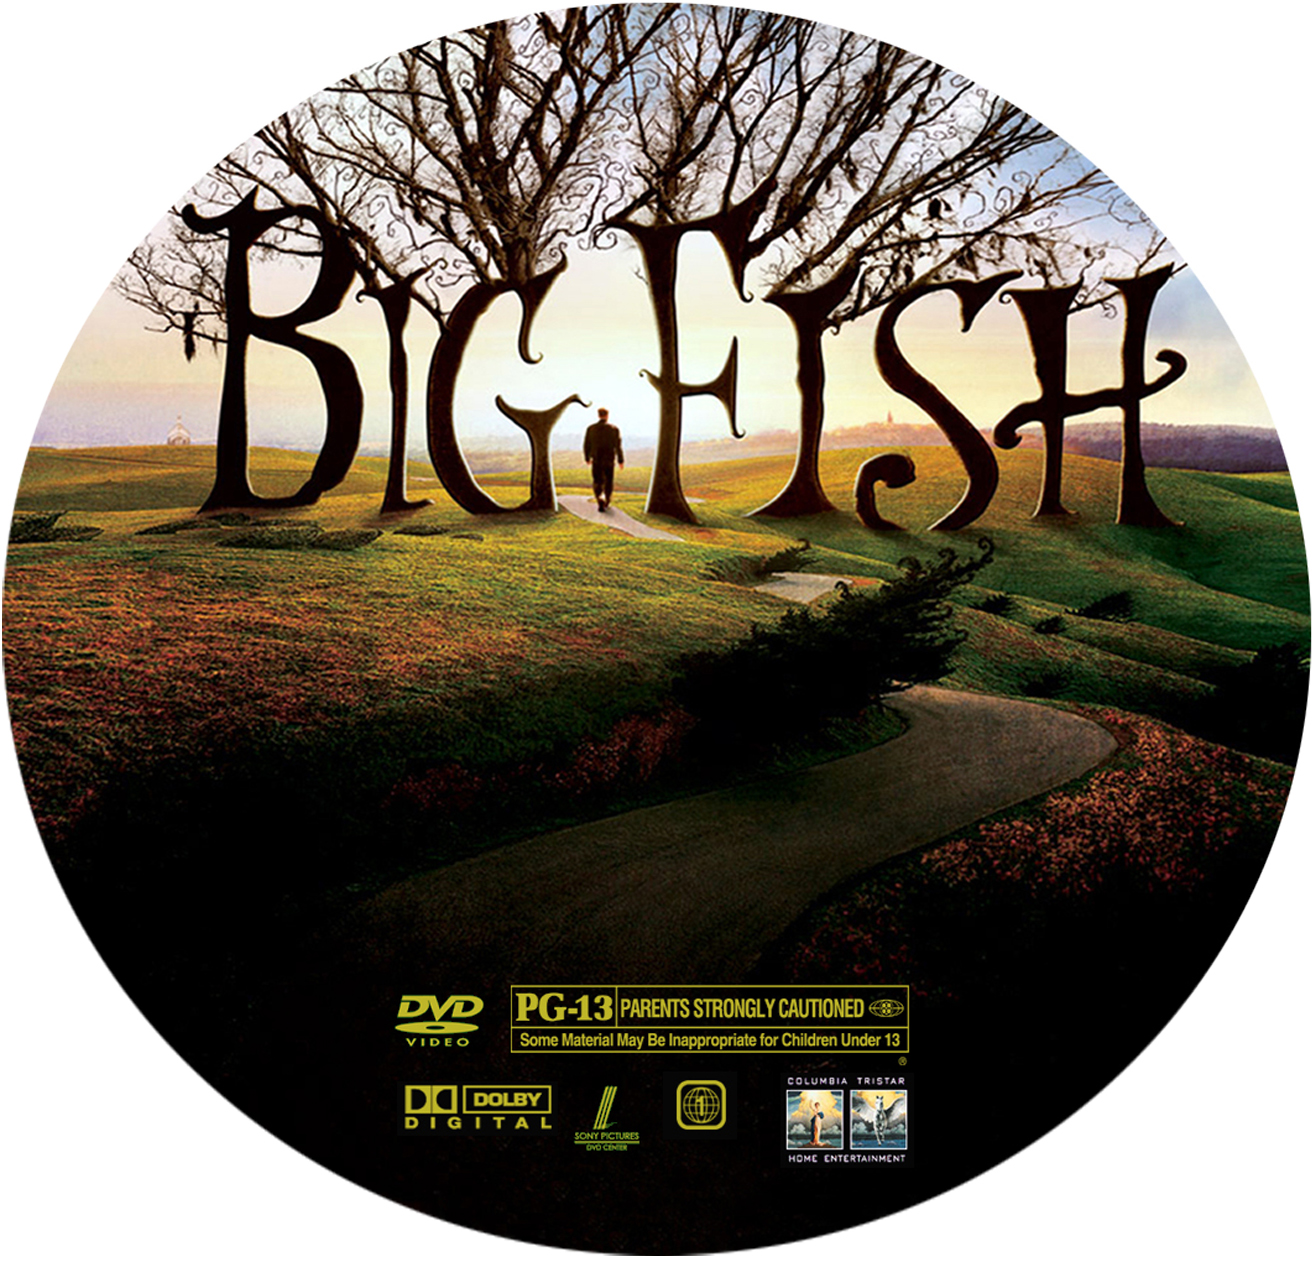 Big Fish (2003) | Movie Poster and DVD Cover Art